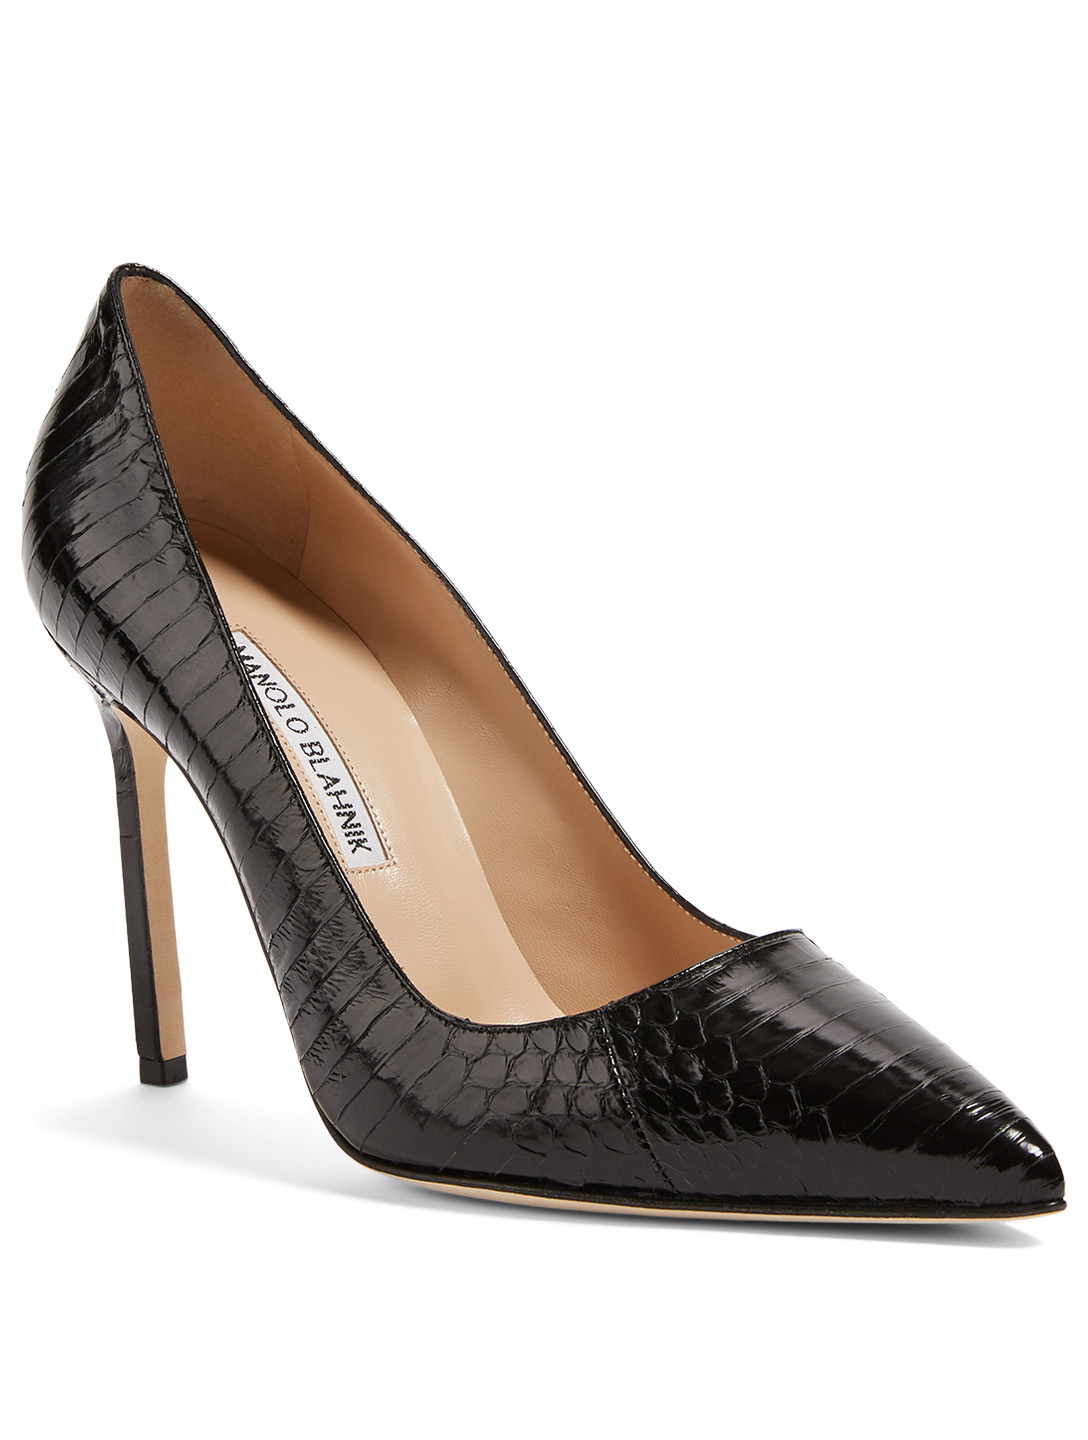 MANOLO BLAHNIK BB 105 Snakeskin Pumps Women's Black